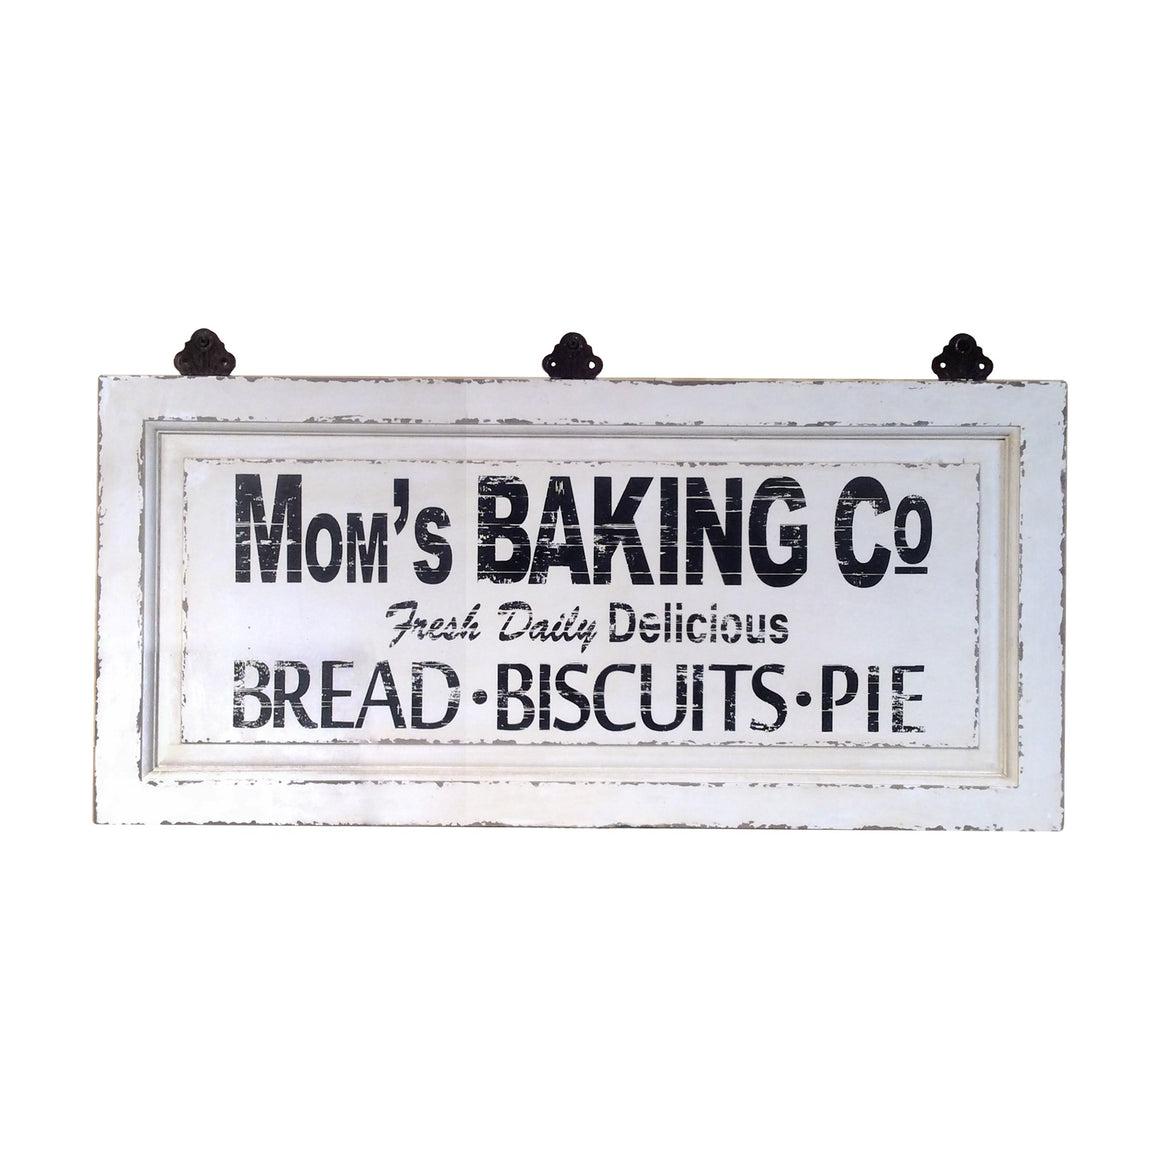 mom's baking co sign